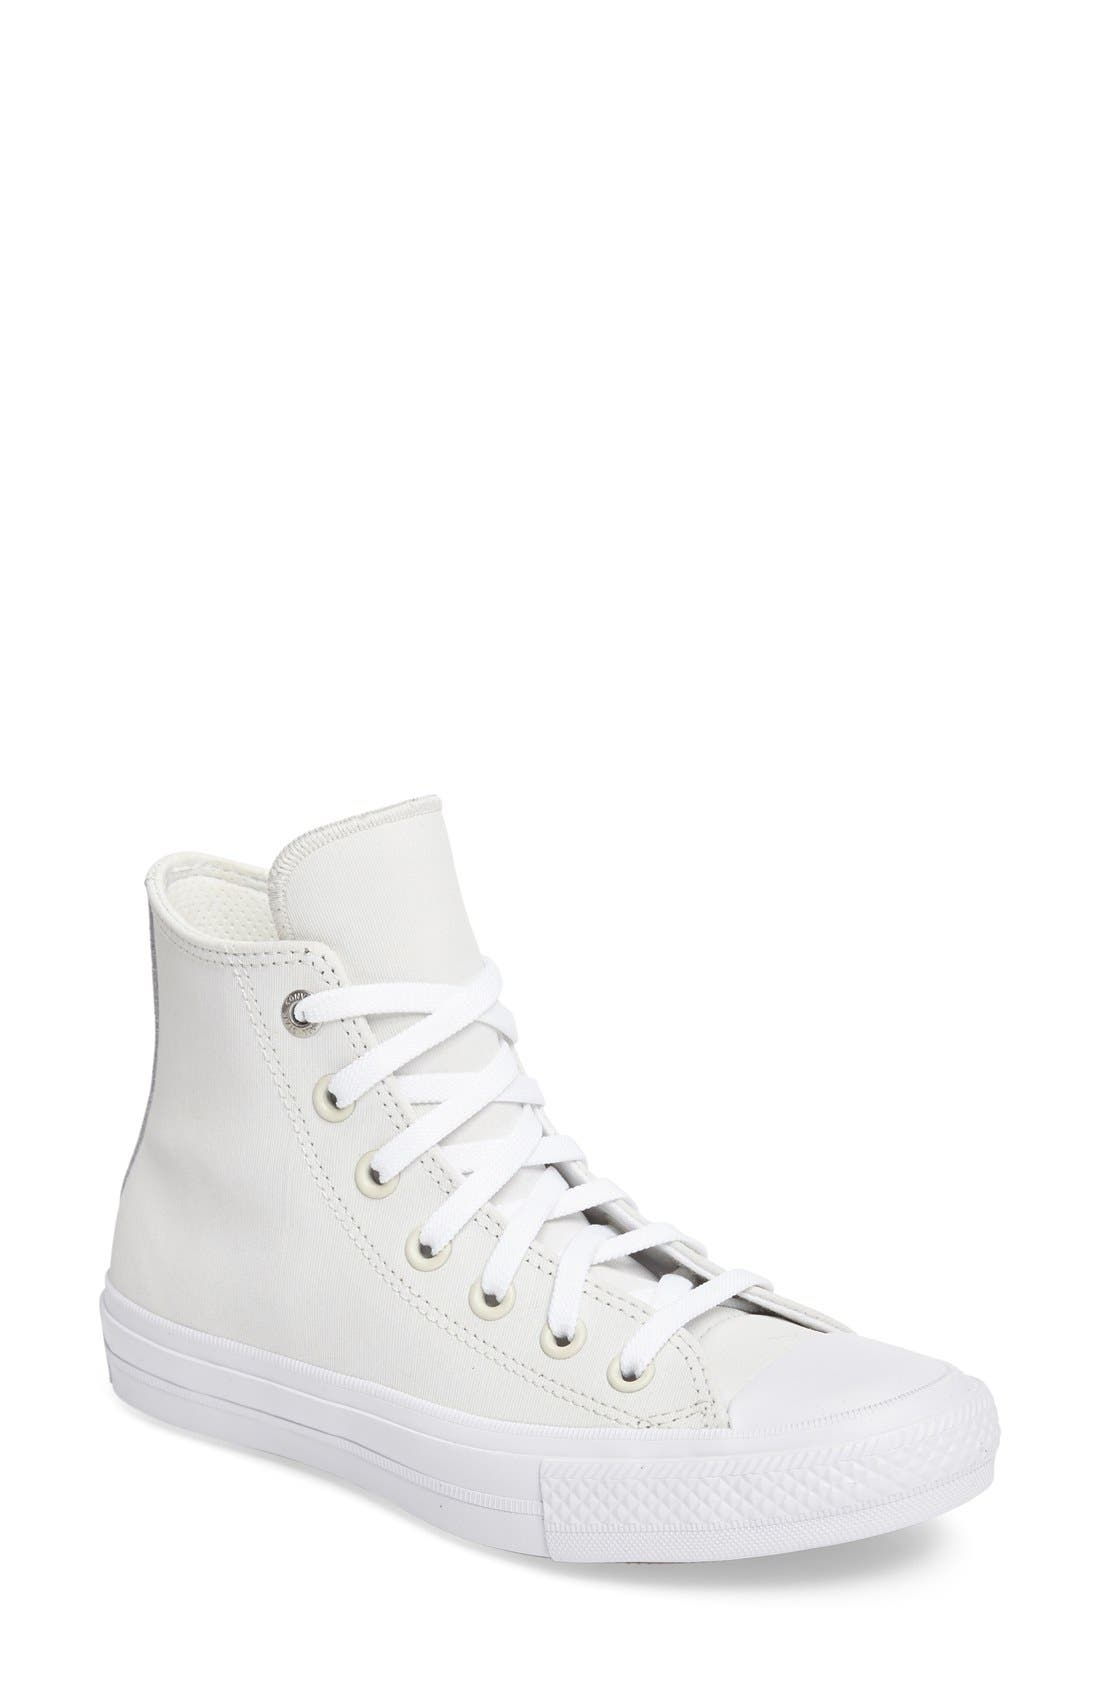 Main Image - Converse Chuck Taylor® All Star® II Two Tone High Top Sneaker (Women)